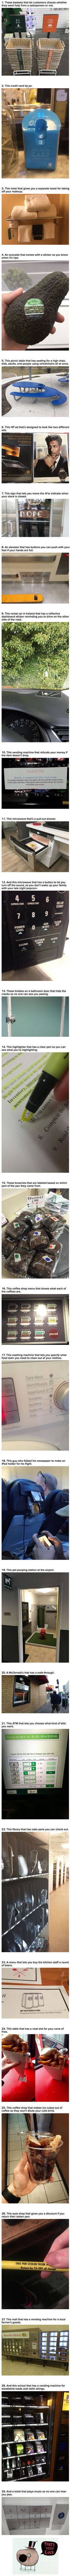 "29 Things That Will Make You Say ""Damn, That's So Smart"""